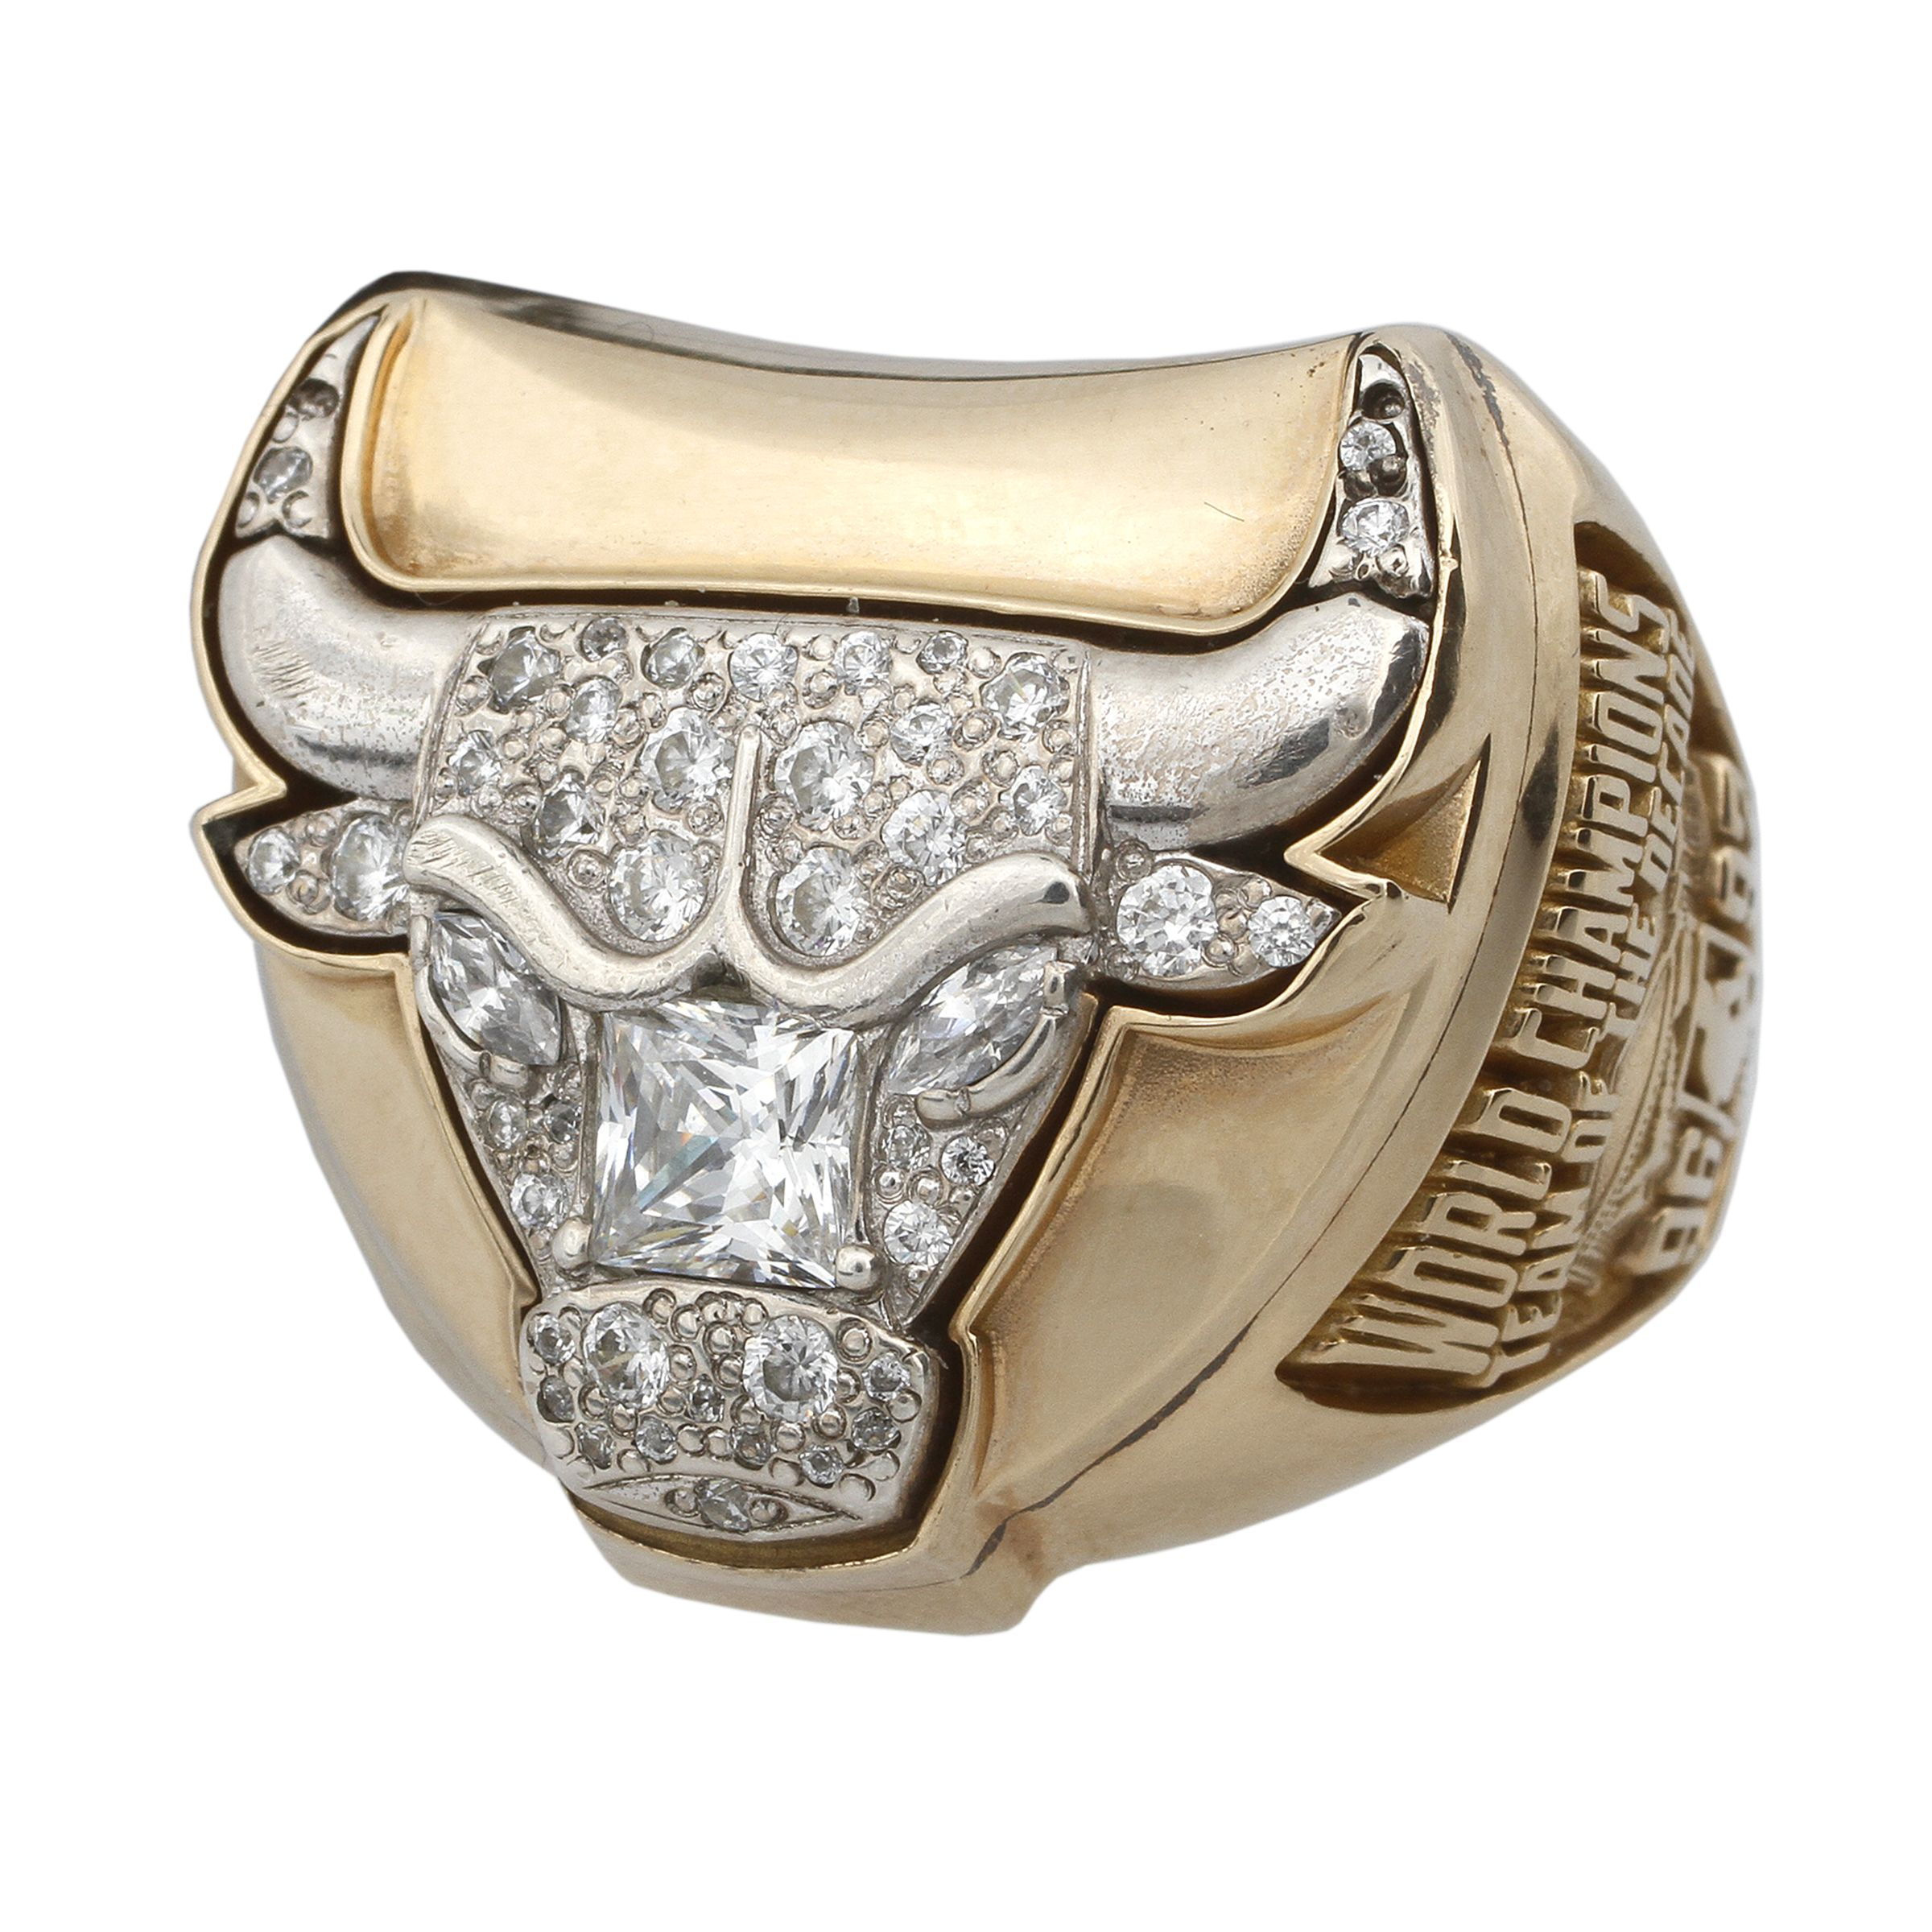 c94a06e371e999 An image relevant to this listing. Michael Jordan Chicago Bulls 1997 Championship  Replica Ring ...